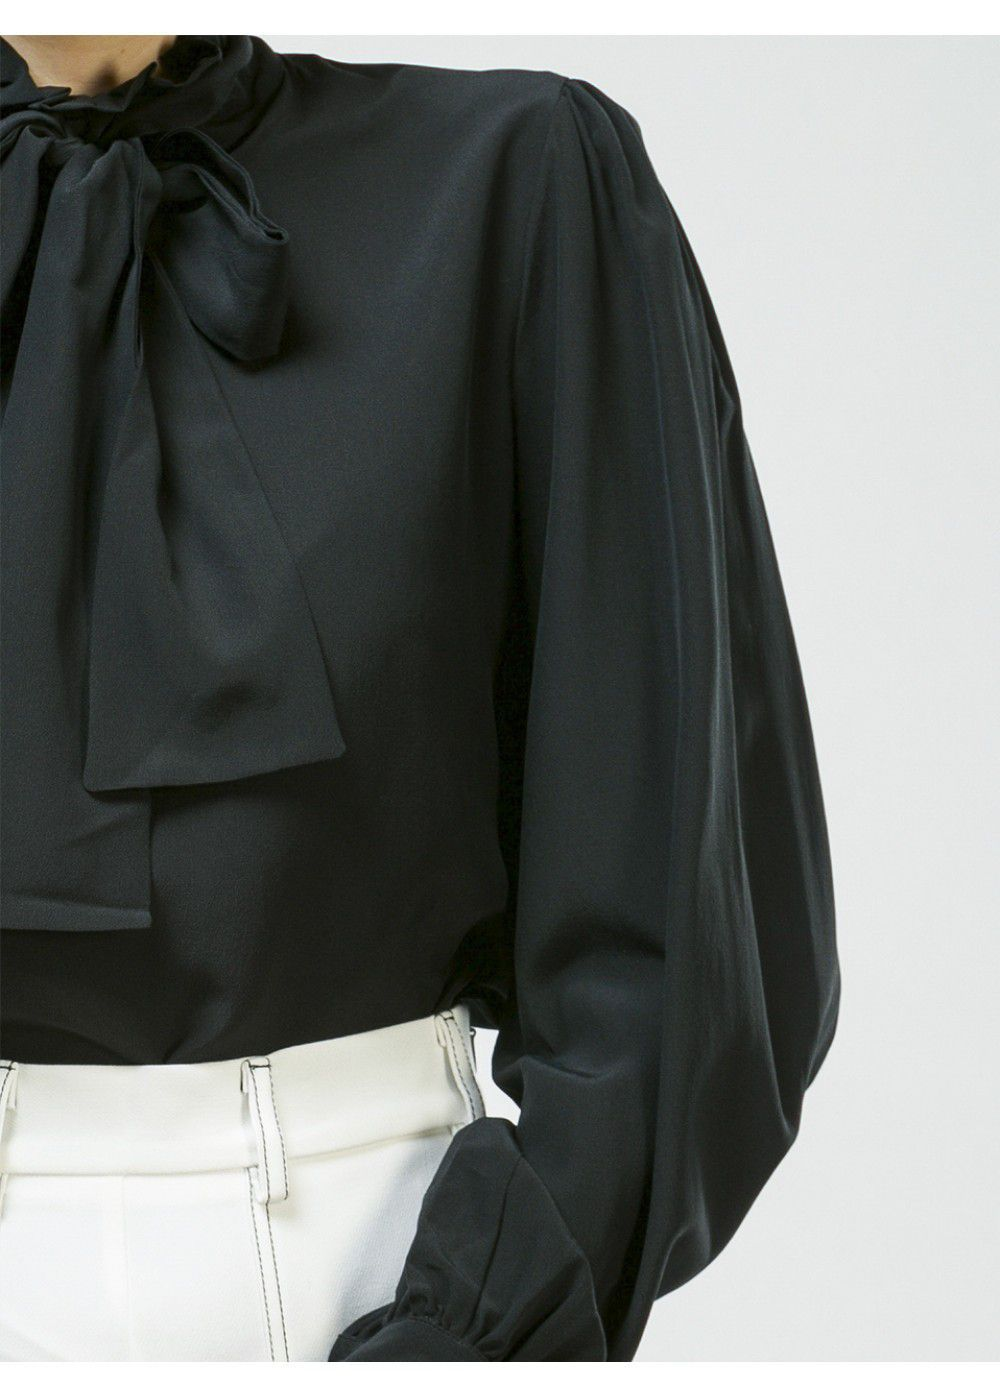 Vivetta Black Silky Shirt